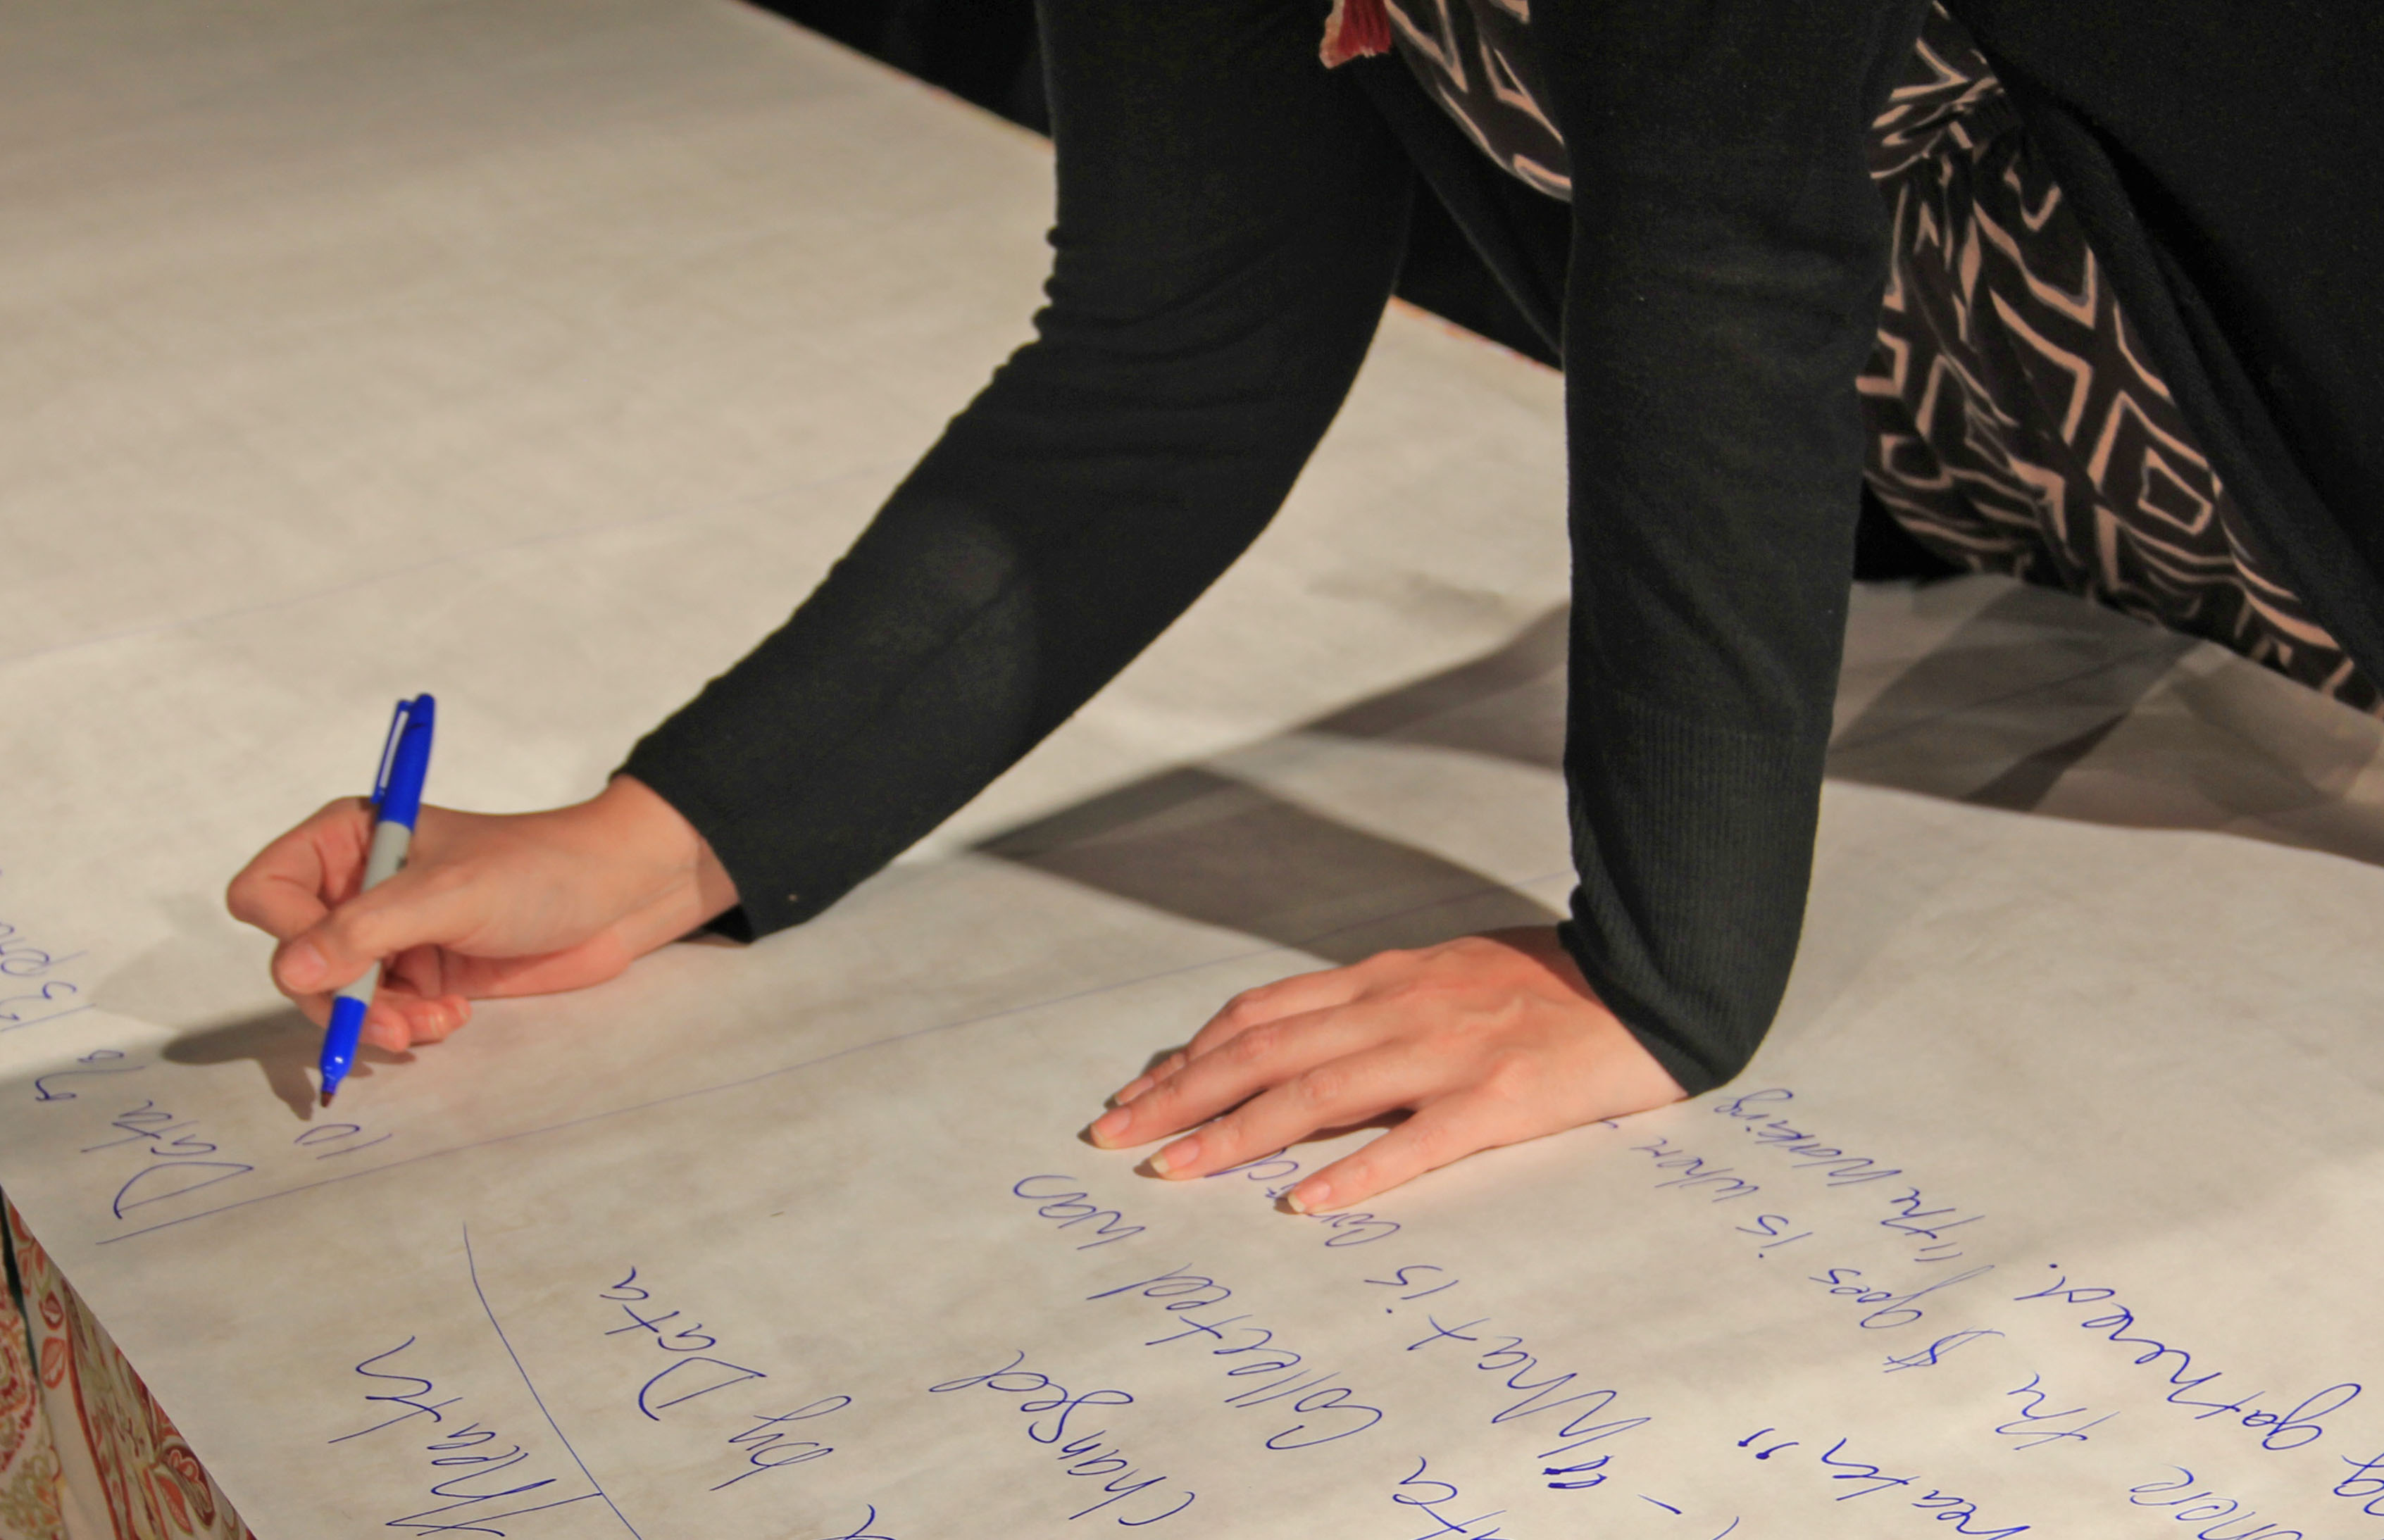 Collaboraction Dives into Theater's Gender Parity Problem